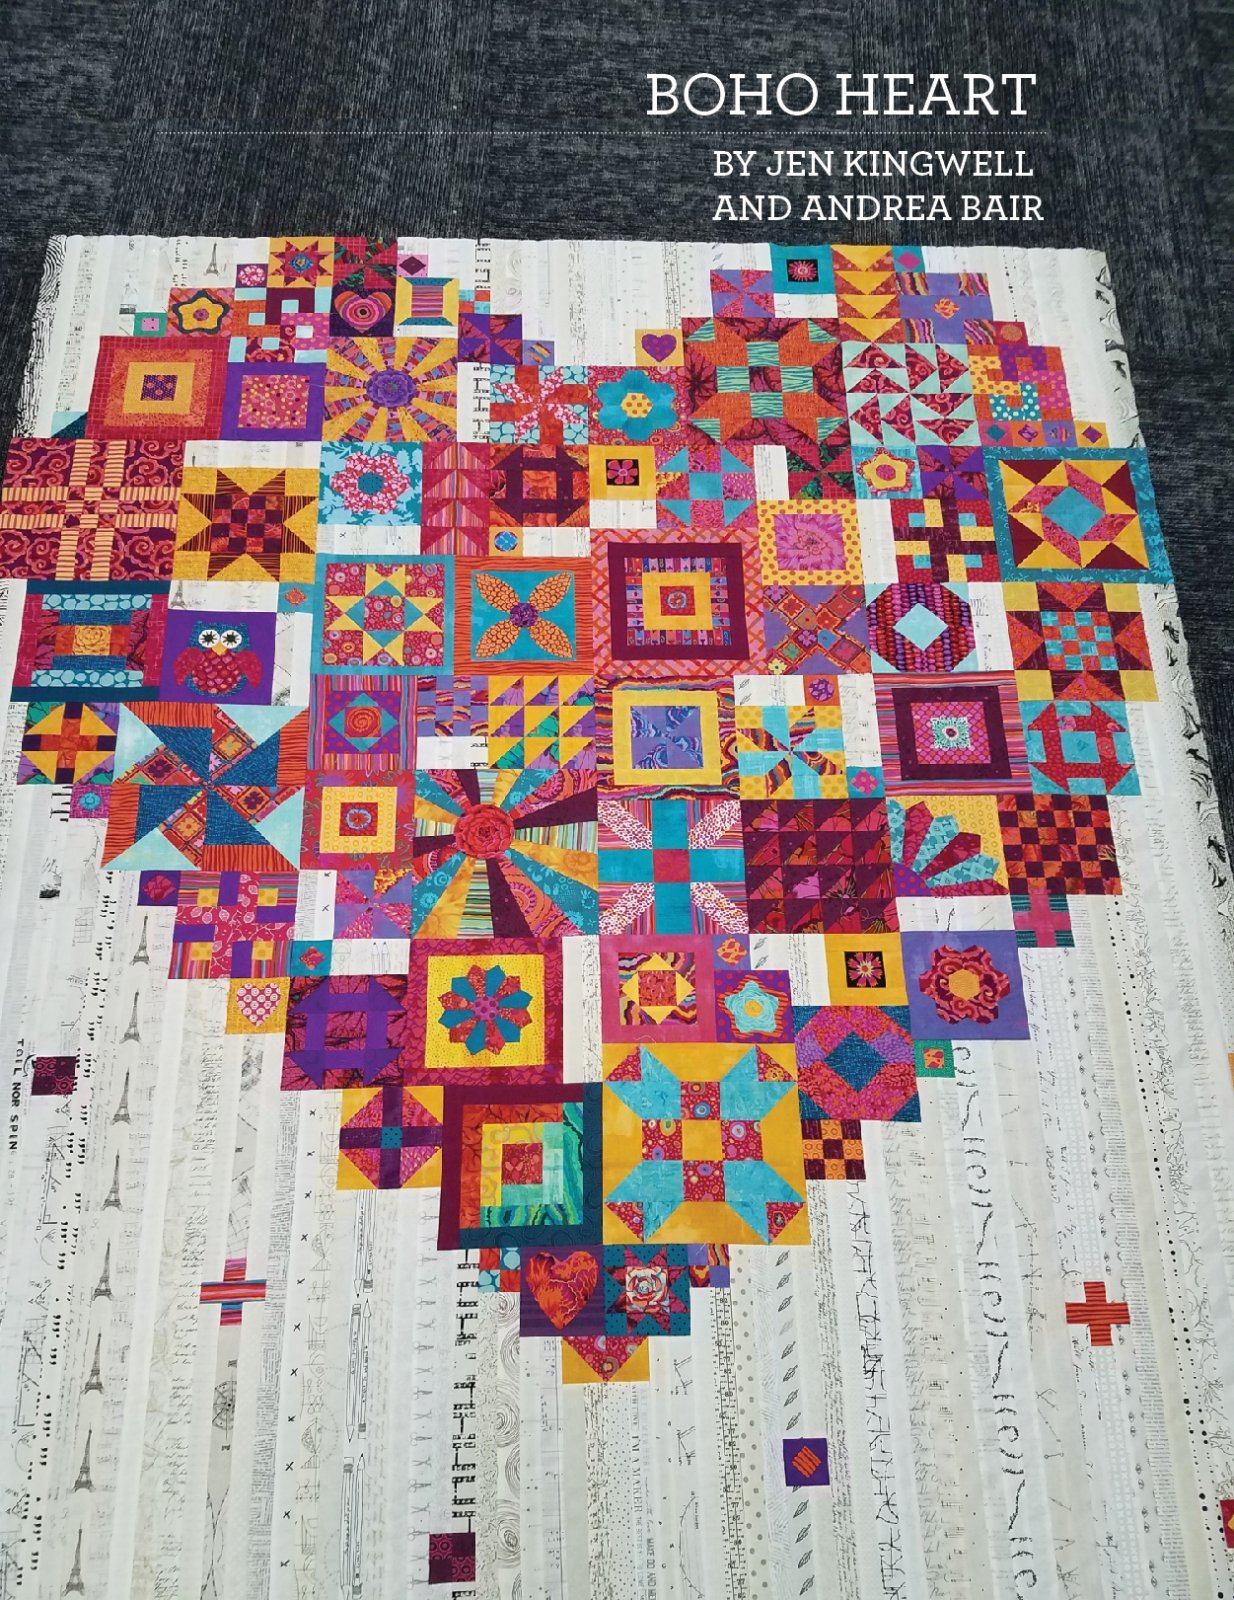 Boho Heart pattern booklet by Jen Kingwell and Andrea Bair Pre-order